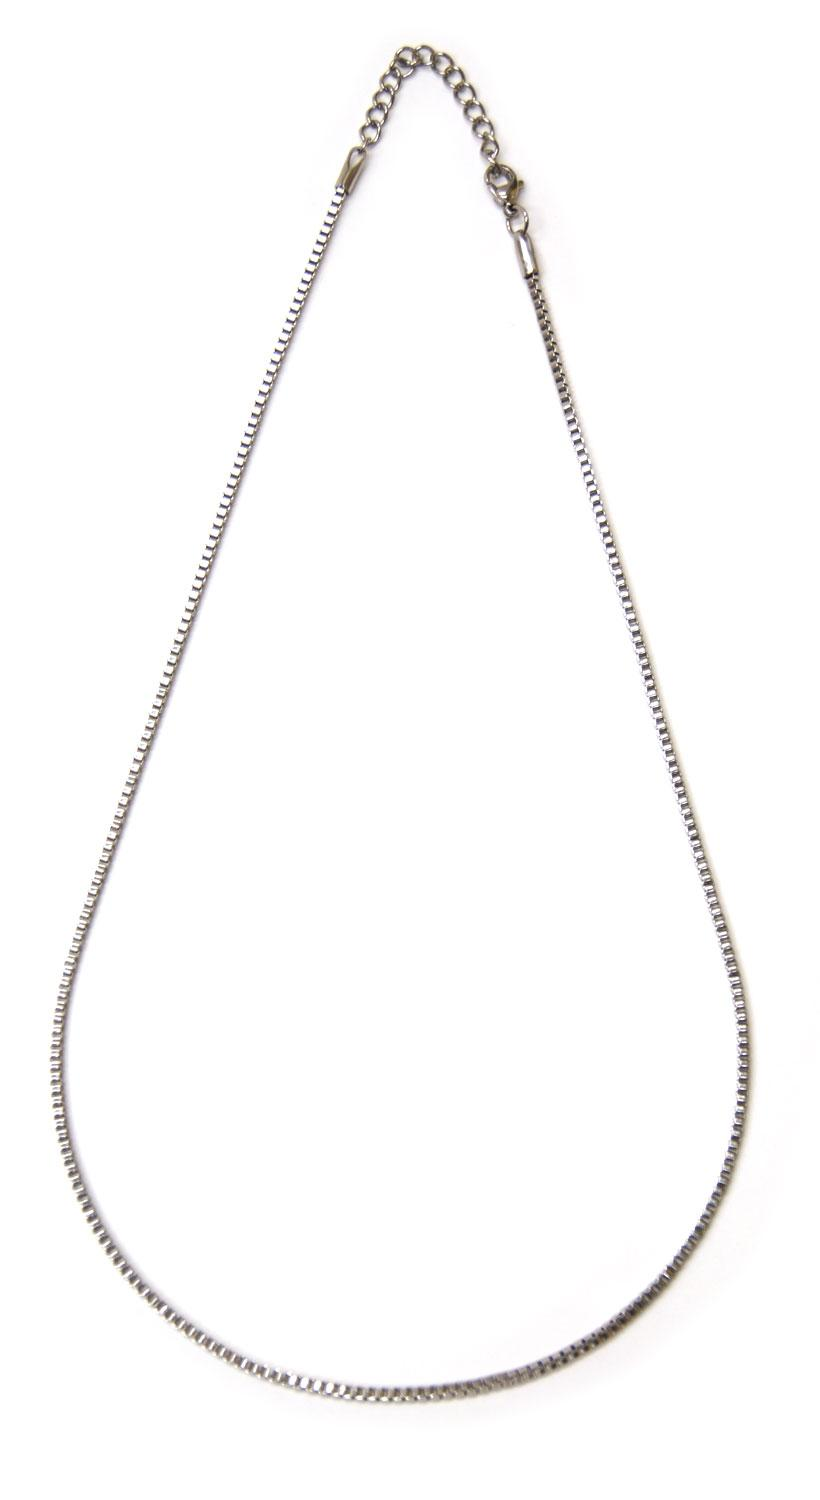 18 Stainless Steel Box Chain Necklace